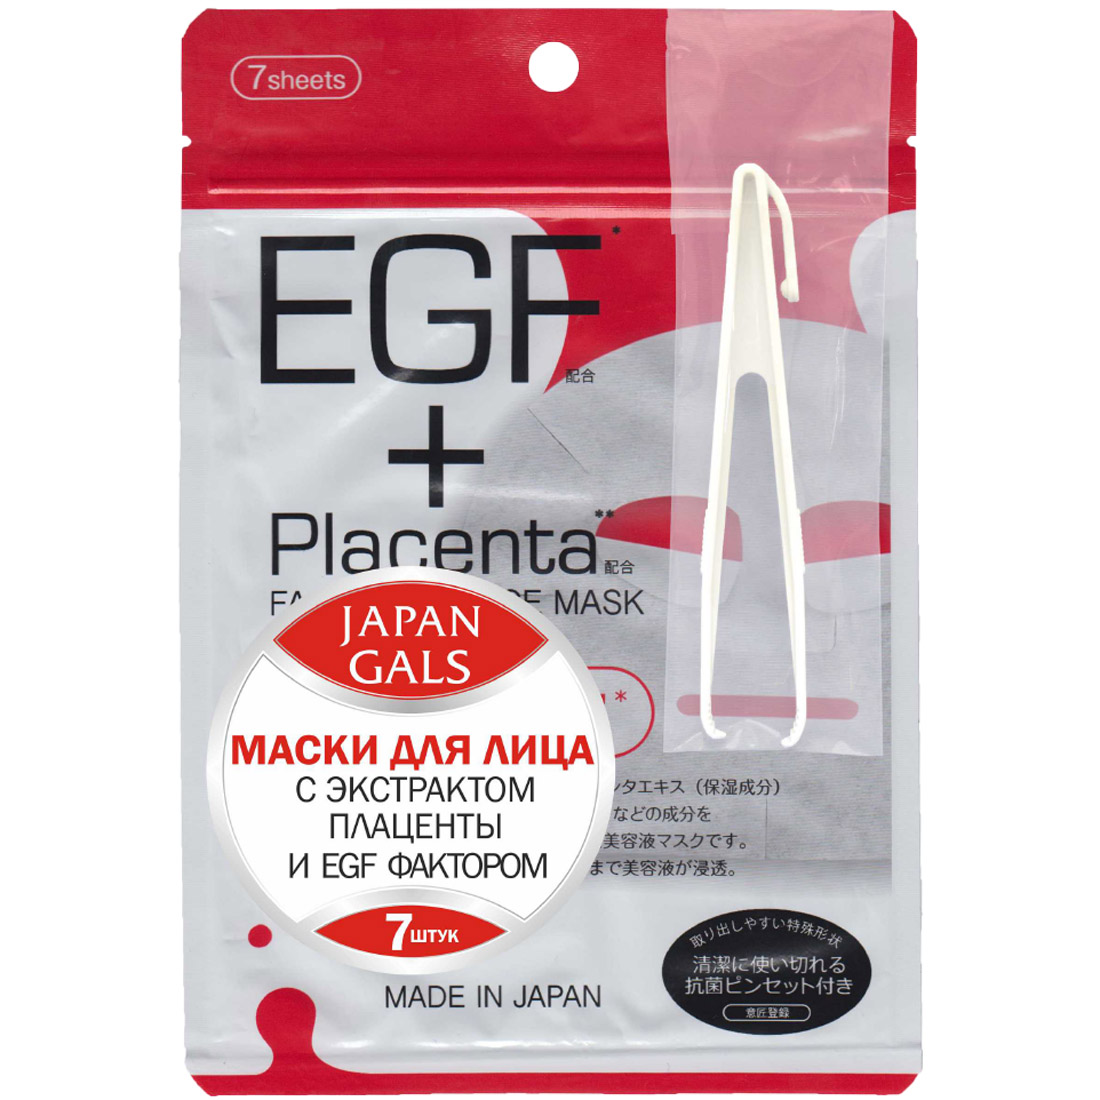 ����� ��� ���� Japan Gals (7 ��) � ��������� � EGF �������� Facial Essence Mask